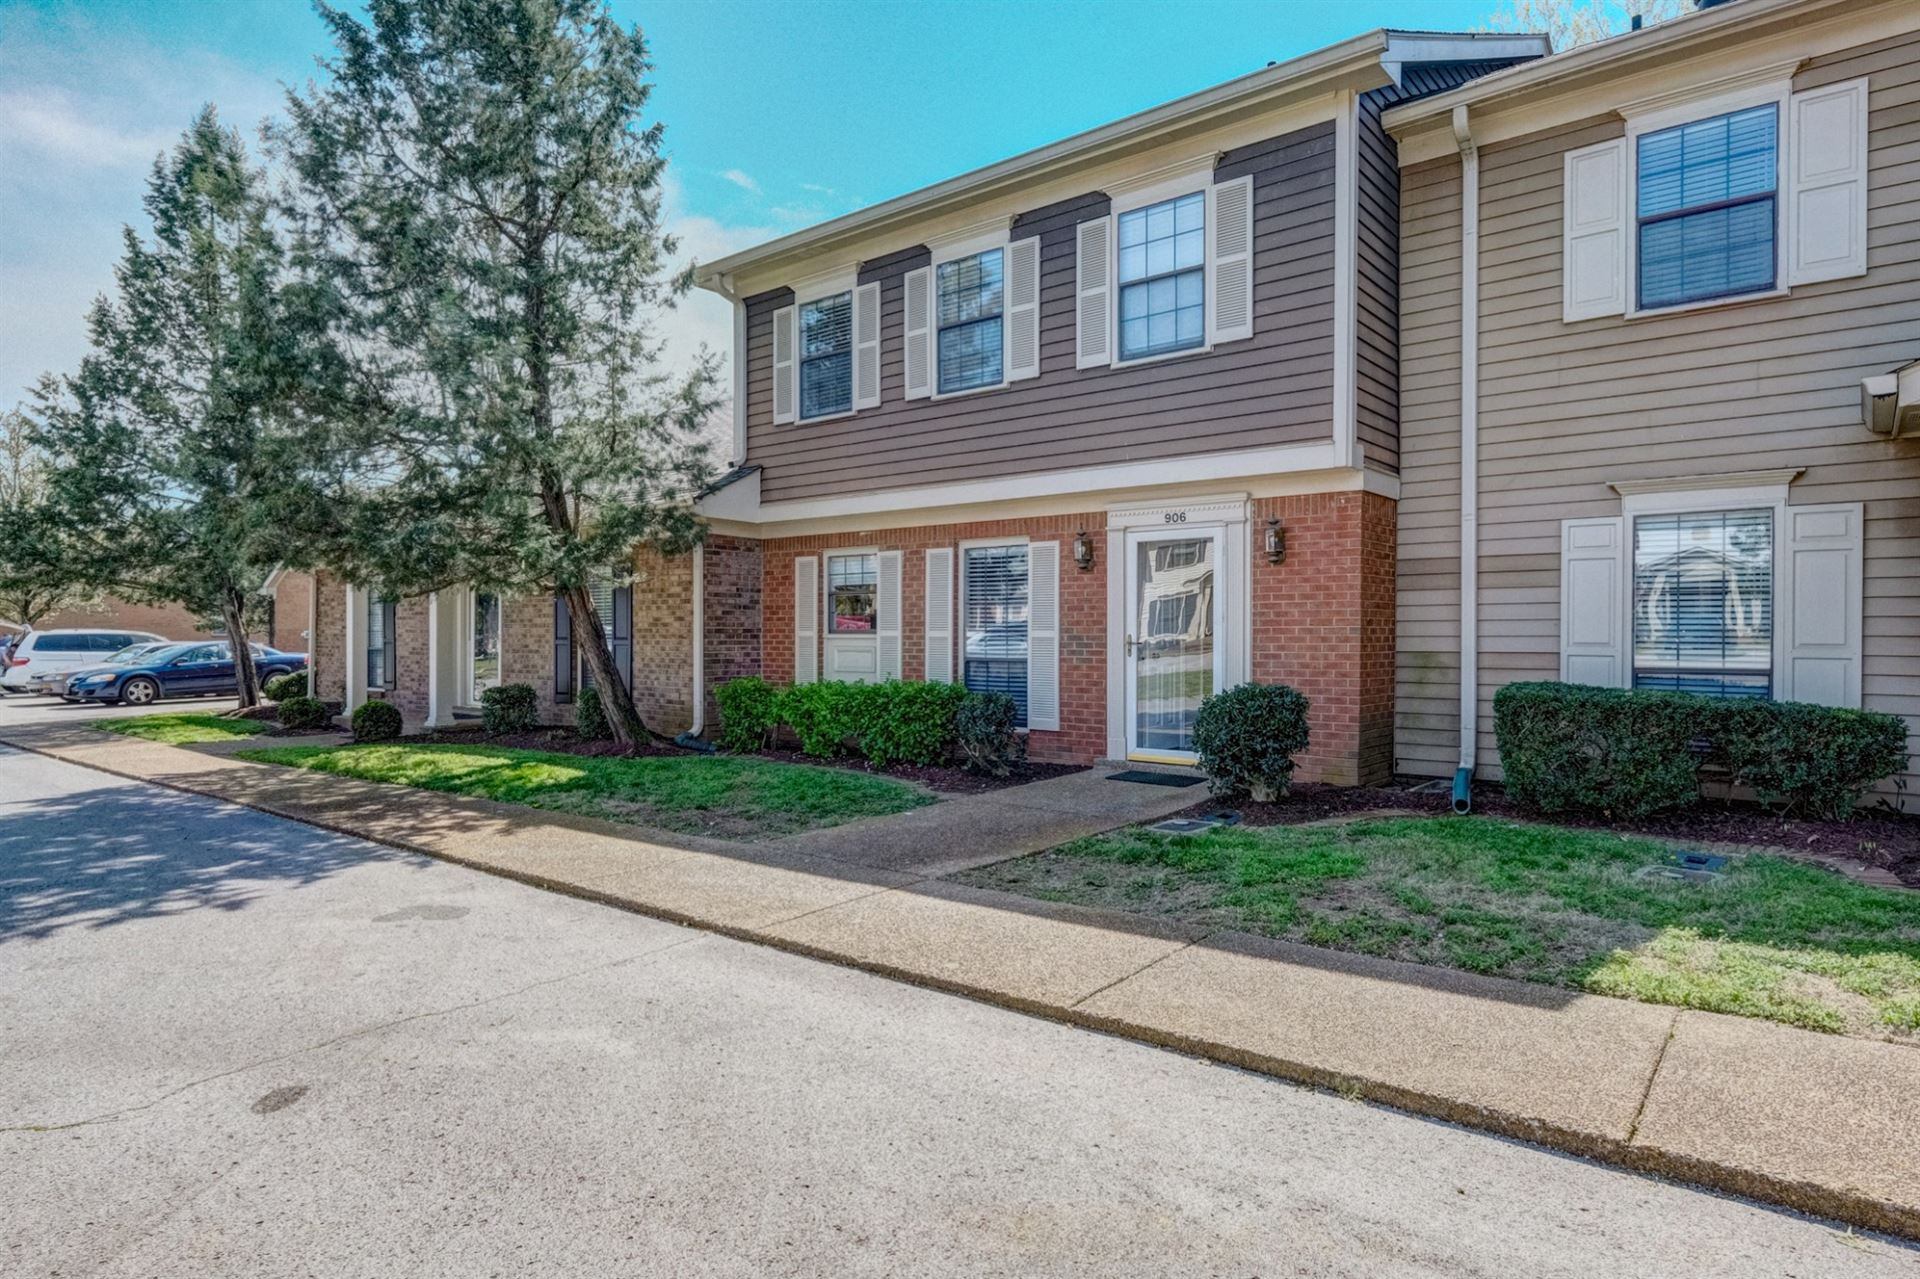 Photo of 906 Brentwood Pt, Brentwood, TN 37027 (MLS # 2135656)